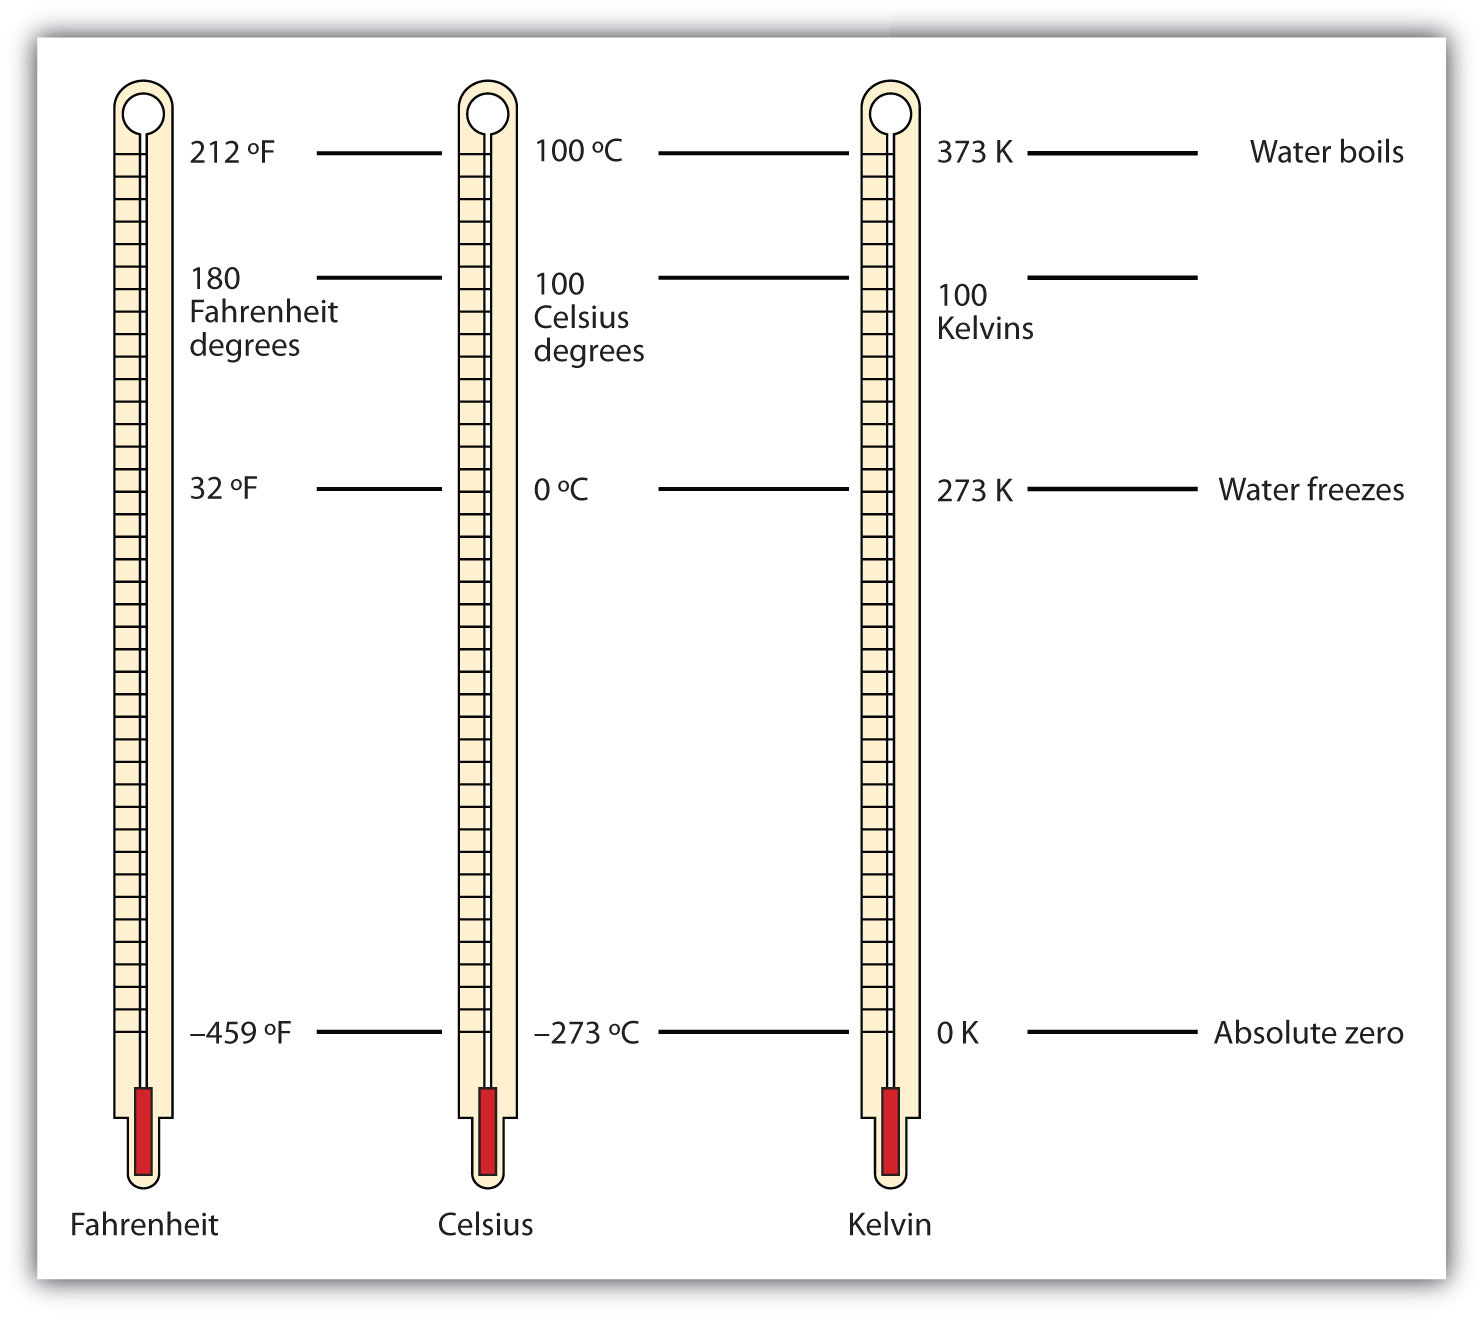 Thermometers showing the Fahrenheit, Celsius and Kelvin scales.